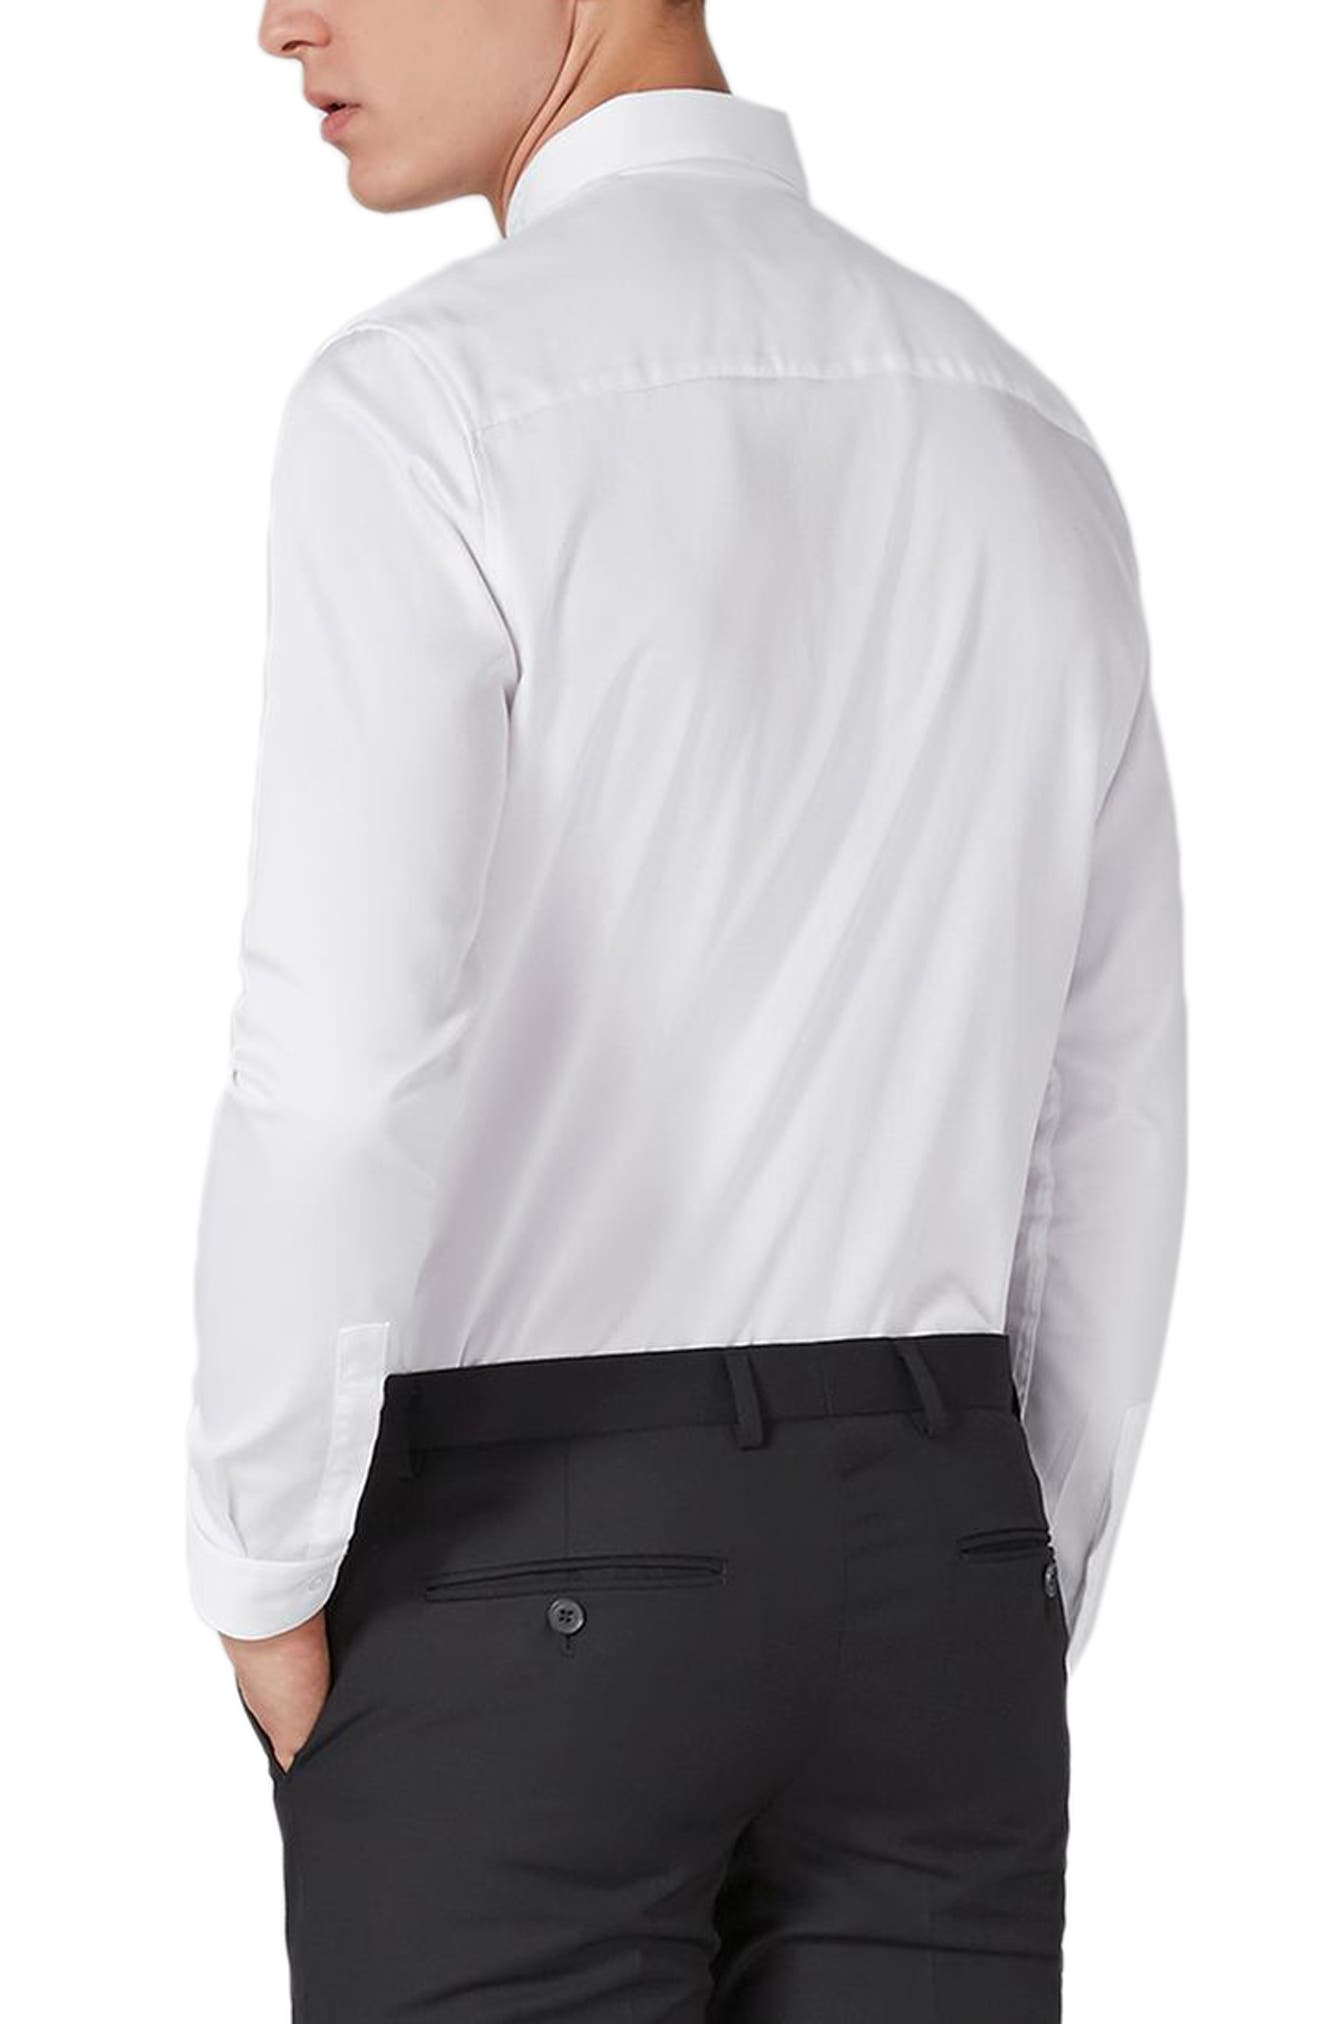 Slim Fit Embroidered Collar Dress Shirt,                             Alternate thumbnail 3, color,                             White